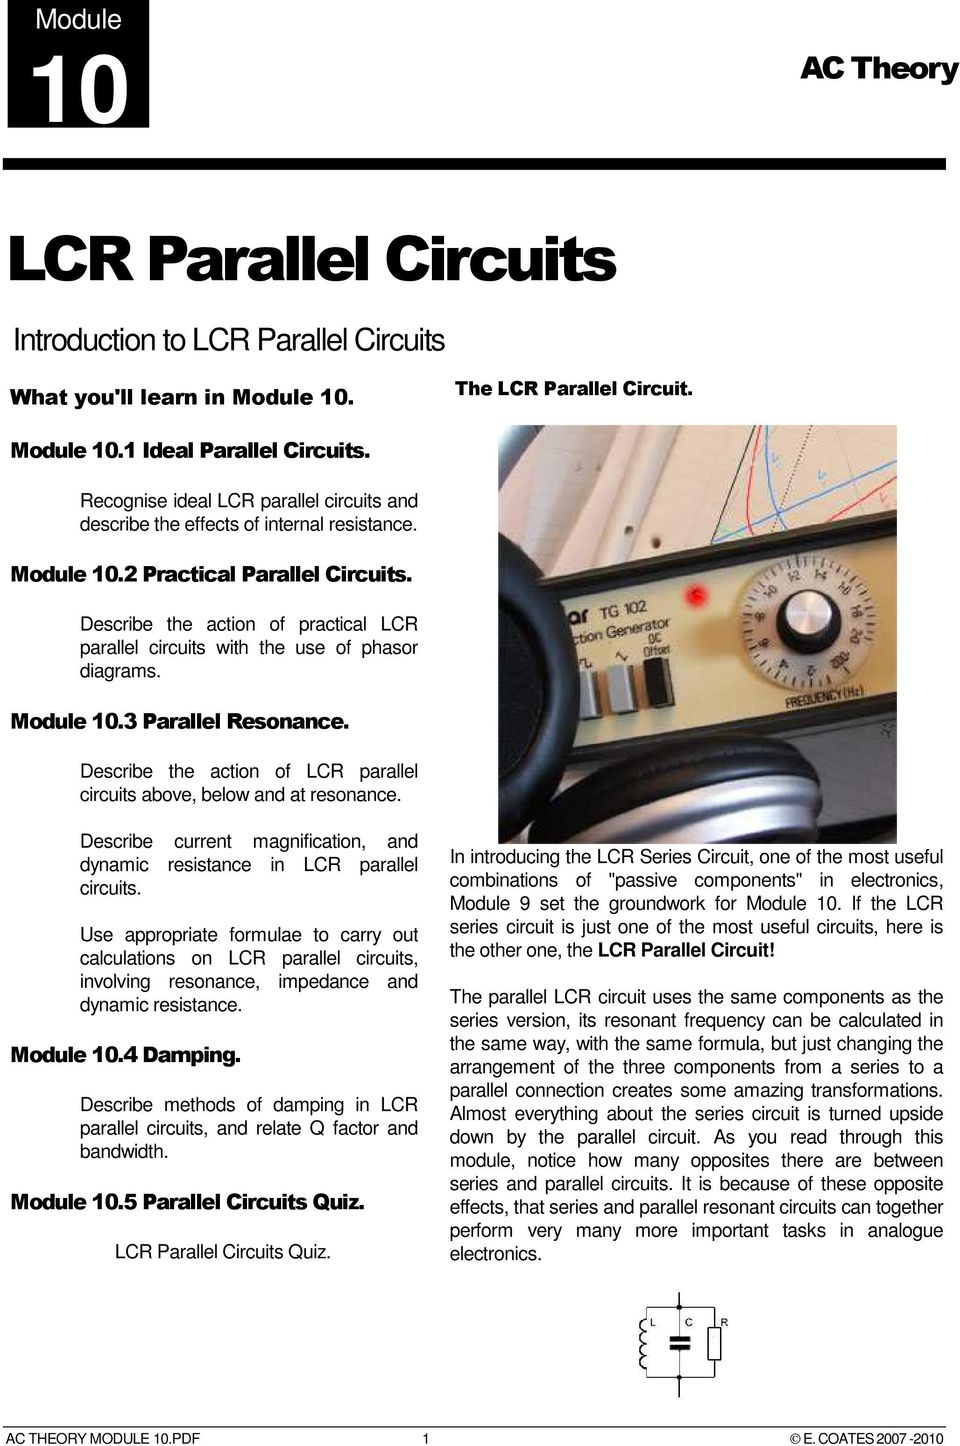 Lcr Parallel Circuits Pdf Meter Circuit Diagram Describe The Action Of Practical With Use Phasor Diagrams Module